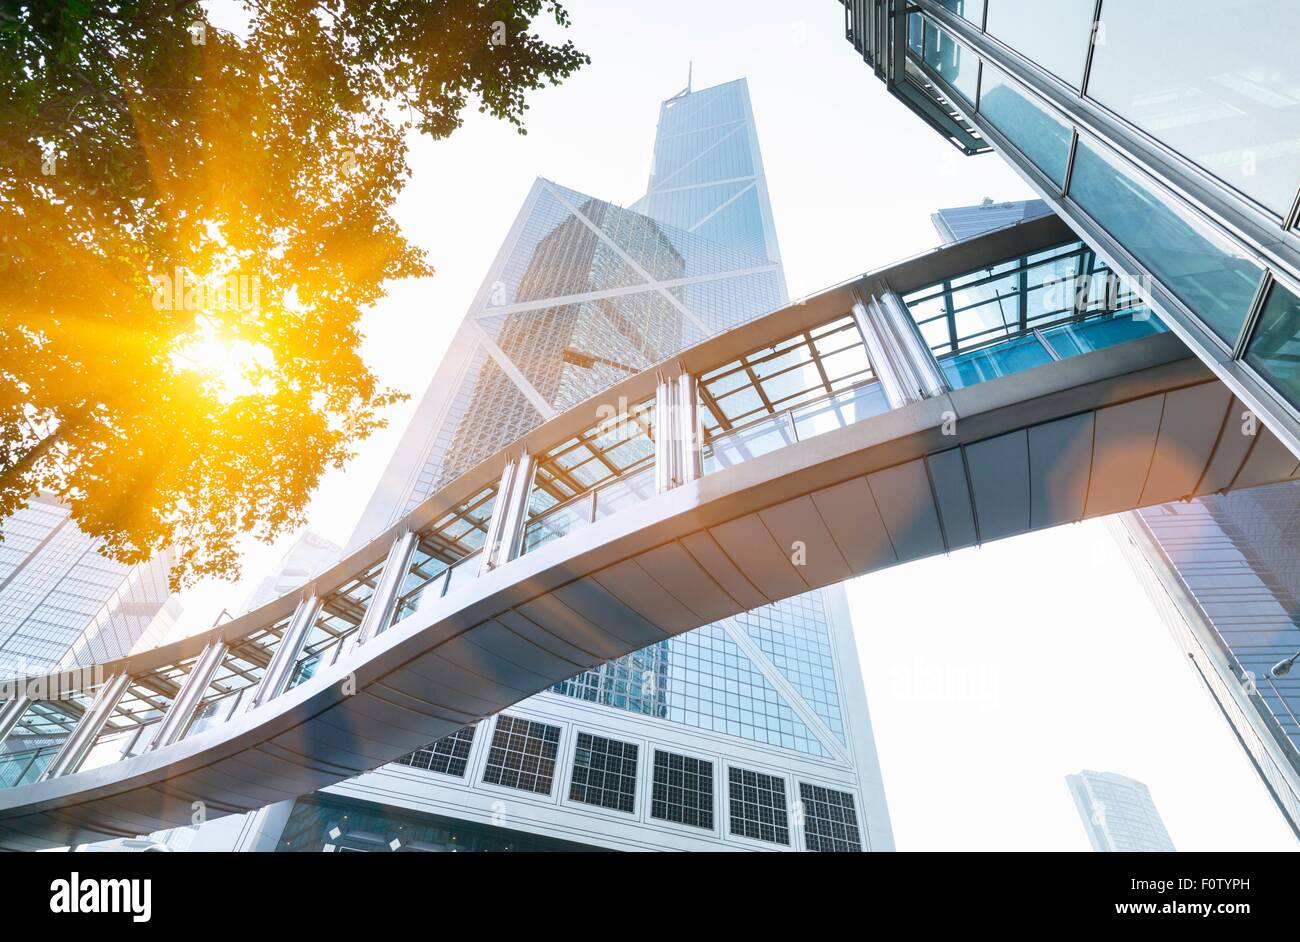 Pedestrian walkway and Bank of China building, Hong Kong, China - Stock Image